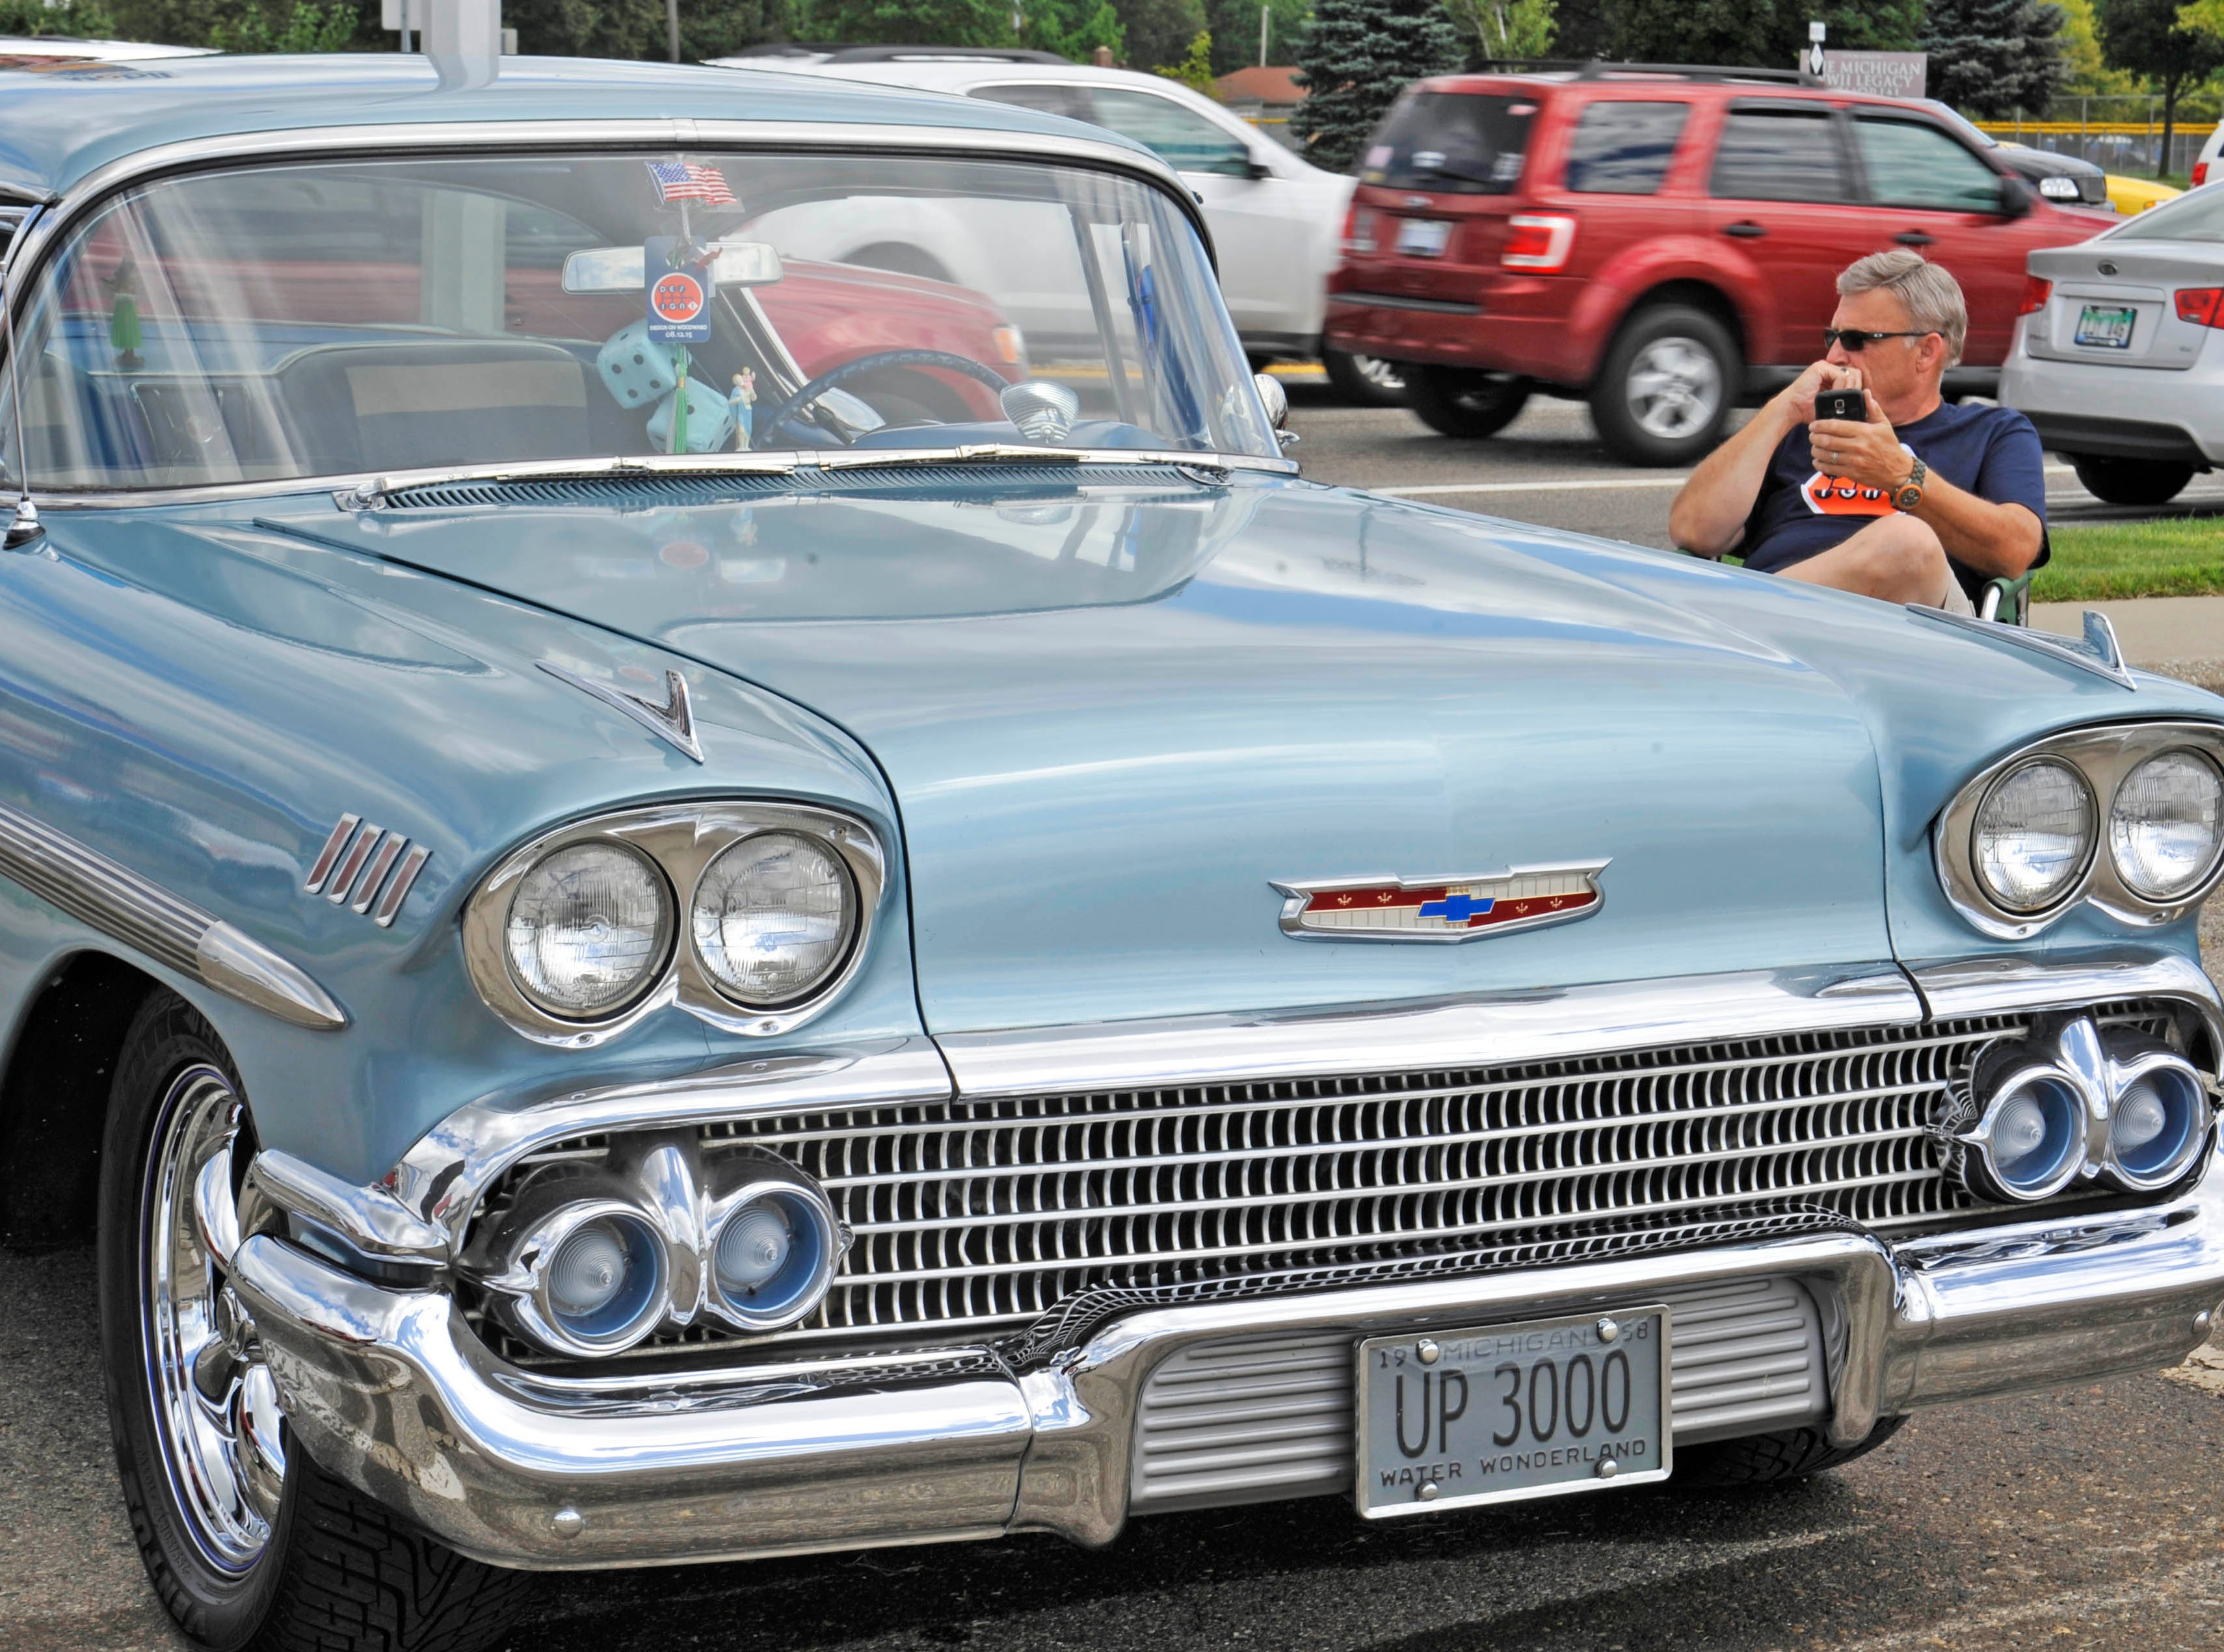 Al Bitell of Livonia sits with his 1958 Chevrolet Impala during a design show as part of the Woodward Dream Cruise at 13 Mile and Woodward in Royal Oak, Aug. 12, 2015.